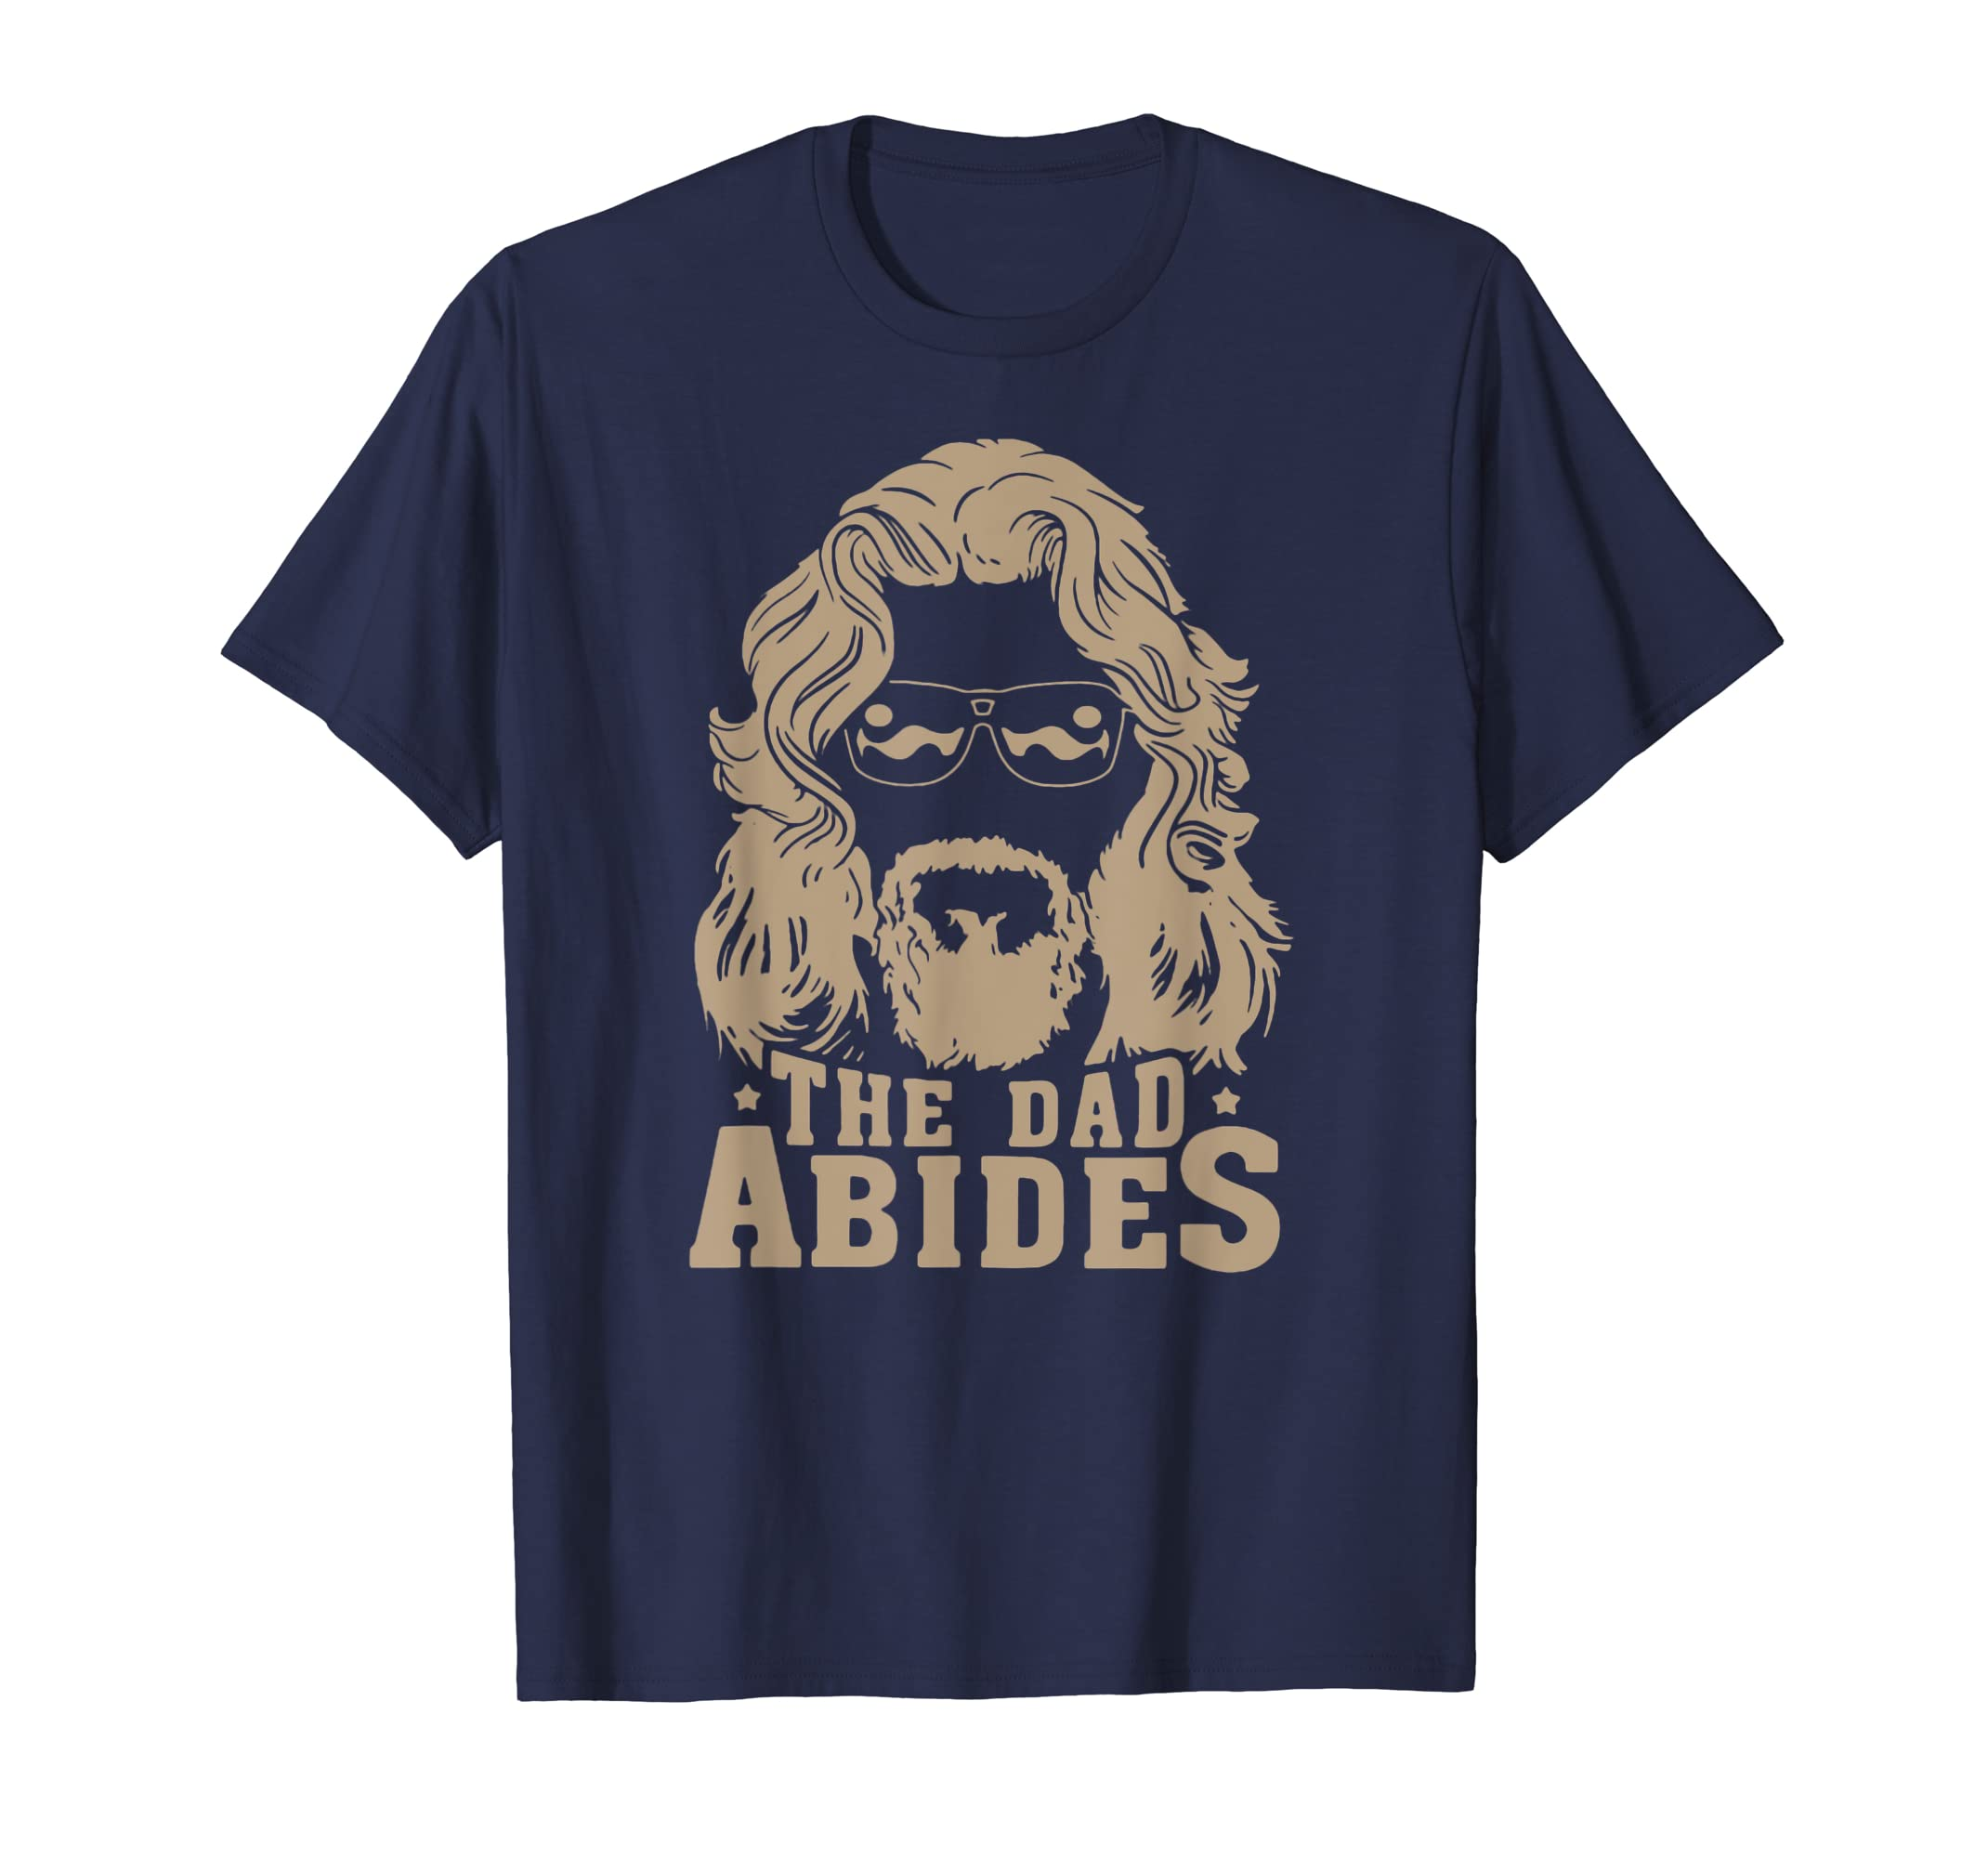 The dad abides t-shirt-ANZ